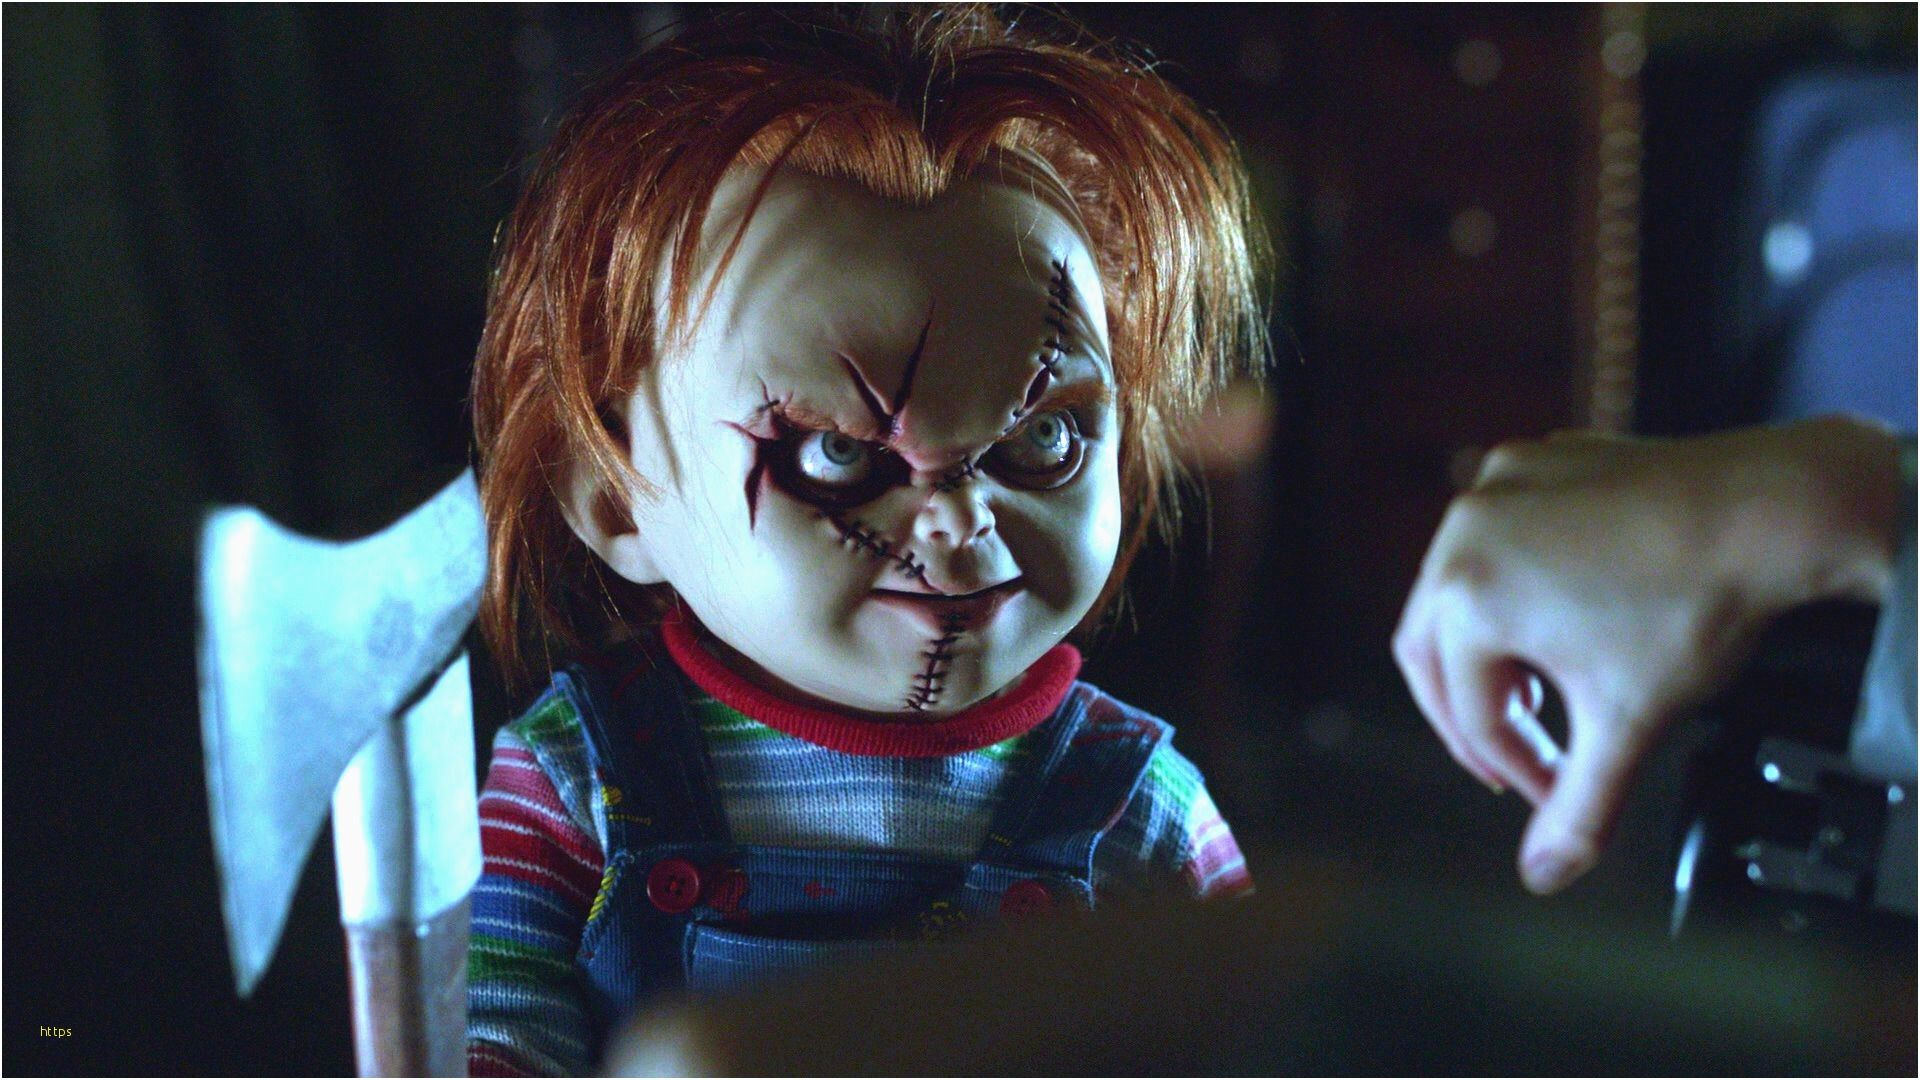 Chucky Doll wallpaper image hd